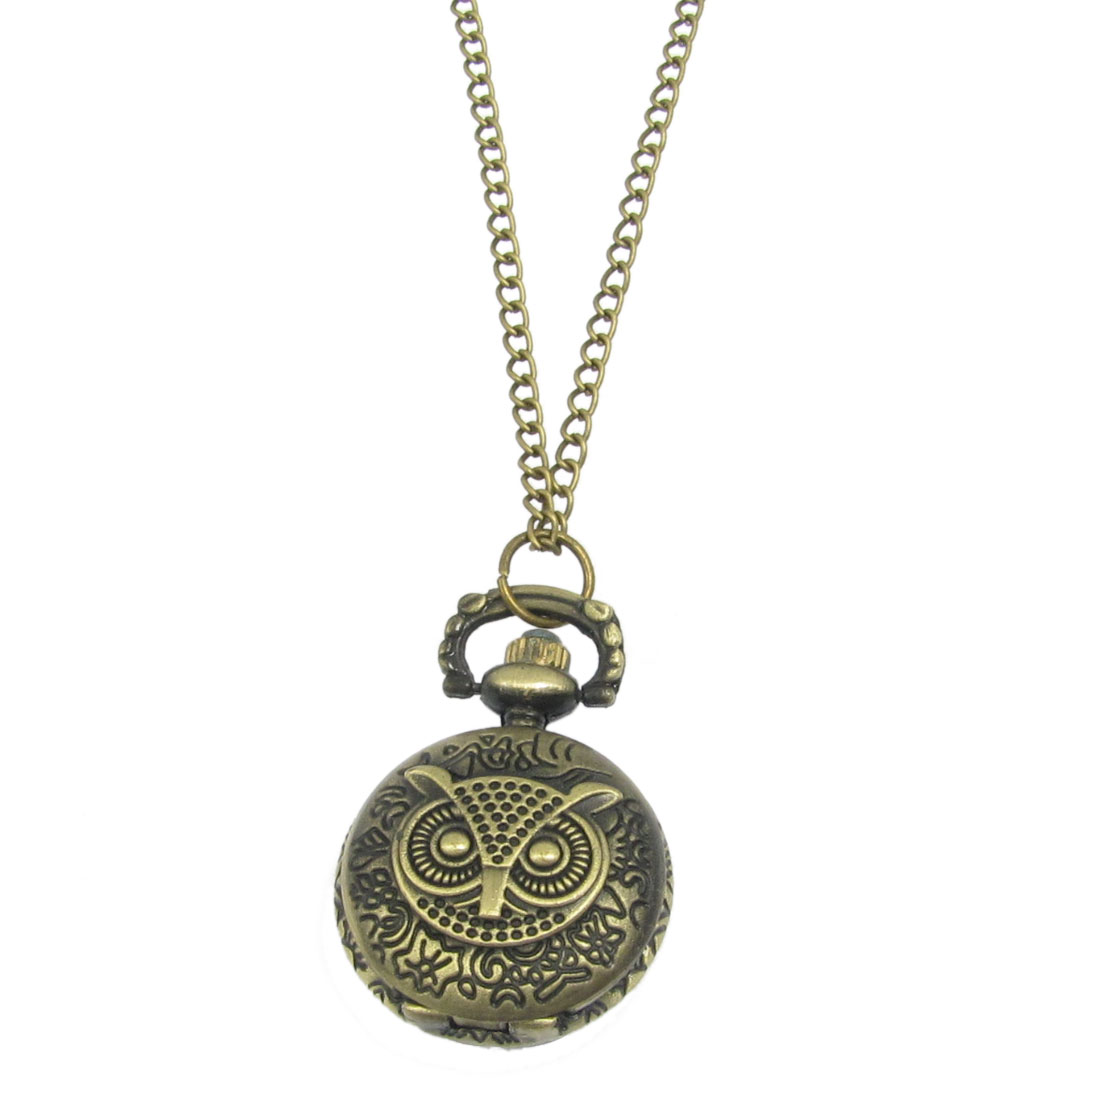 Flower Carved Owl Case Numbers Quartz Numerals Clock Necklace Watch Bronze Tone